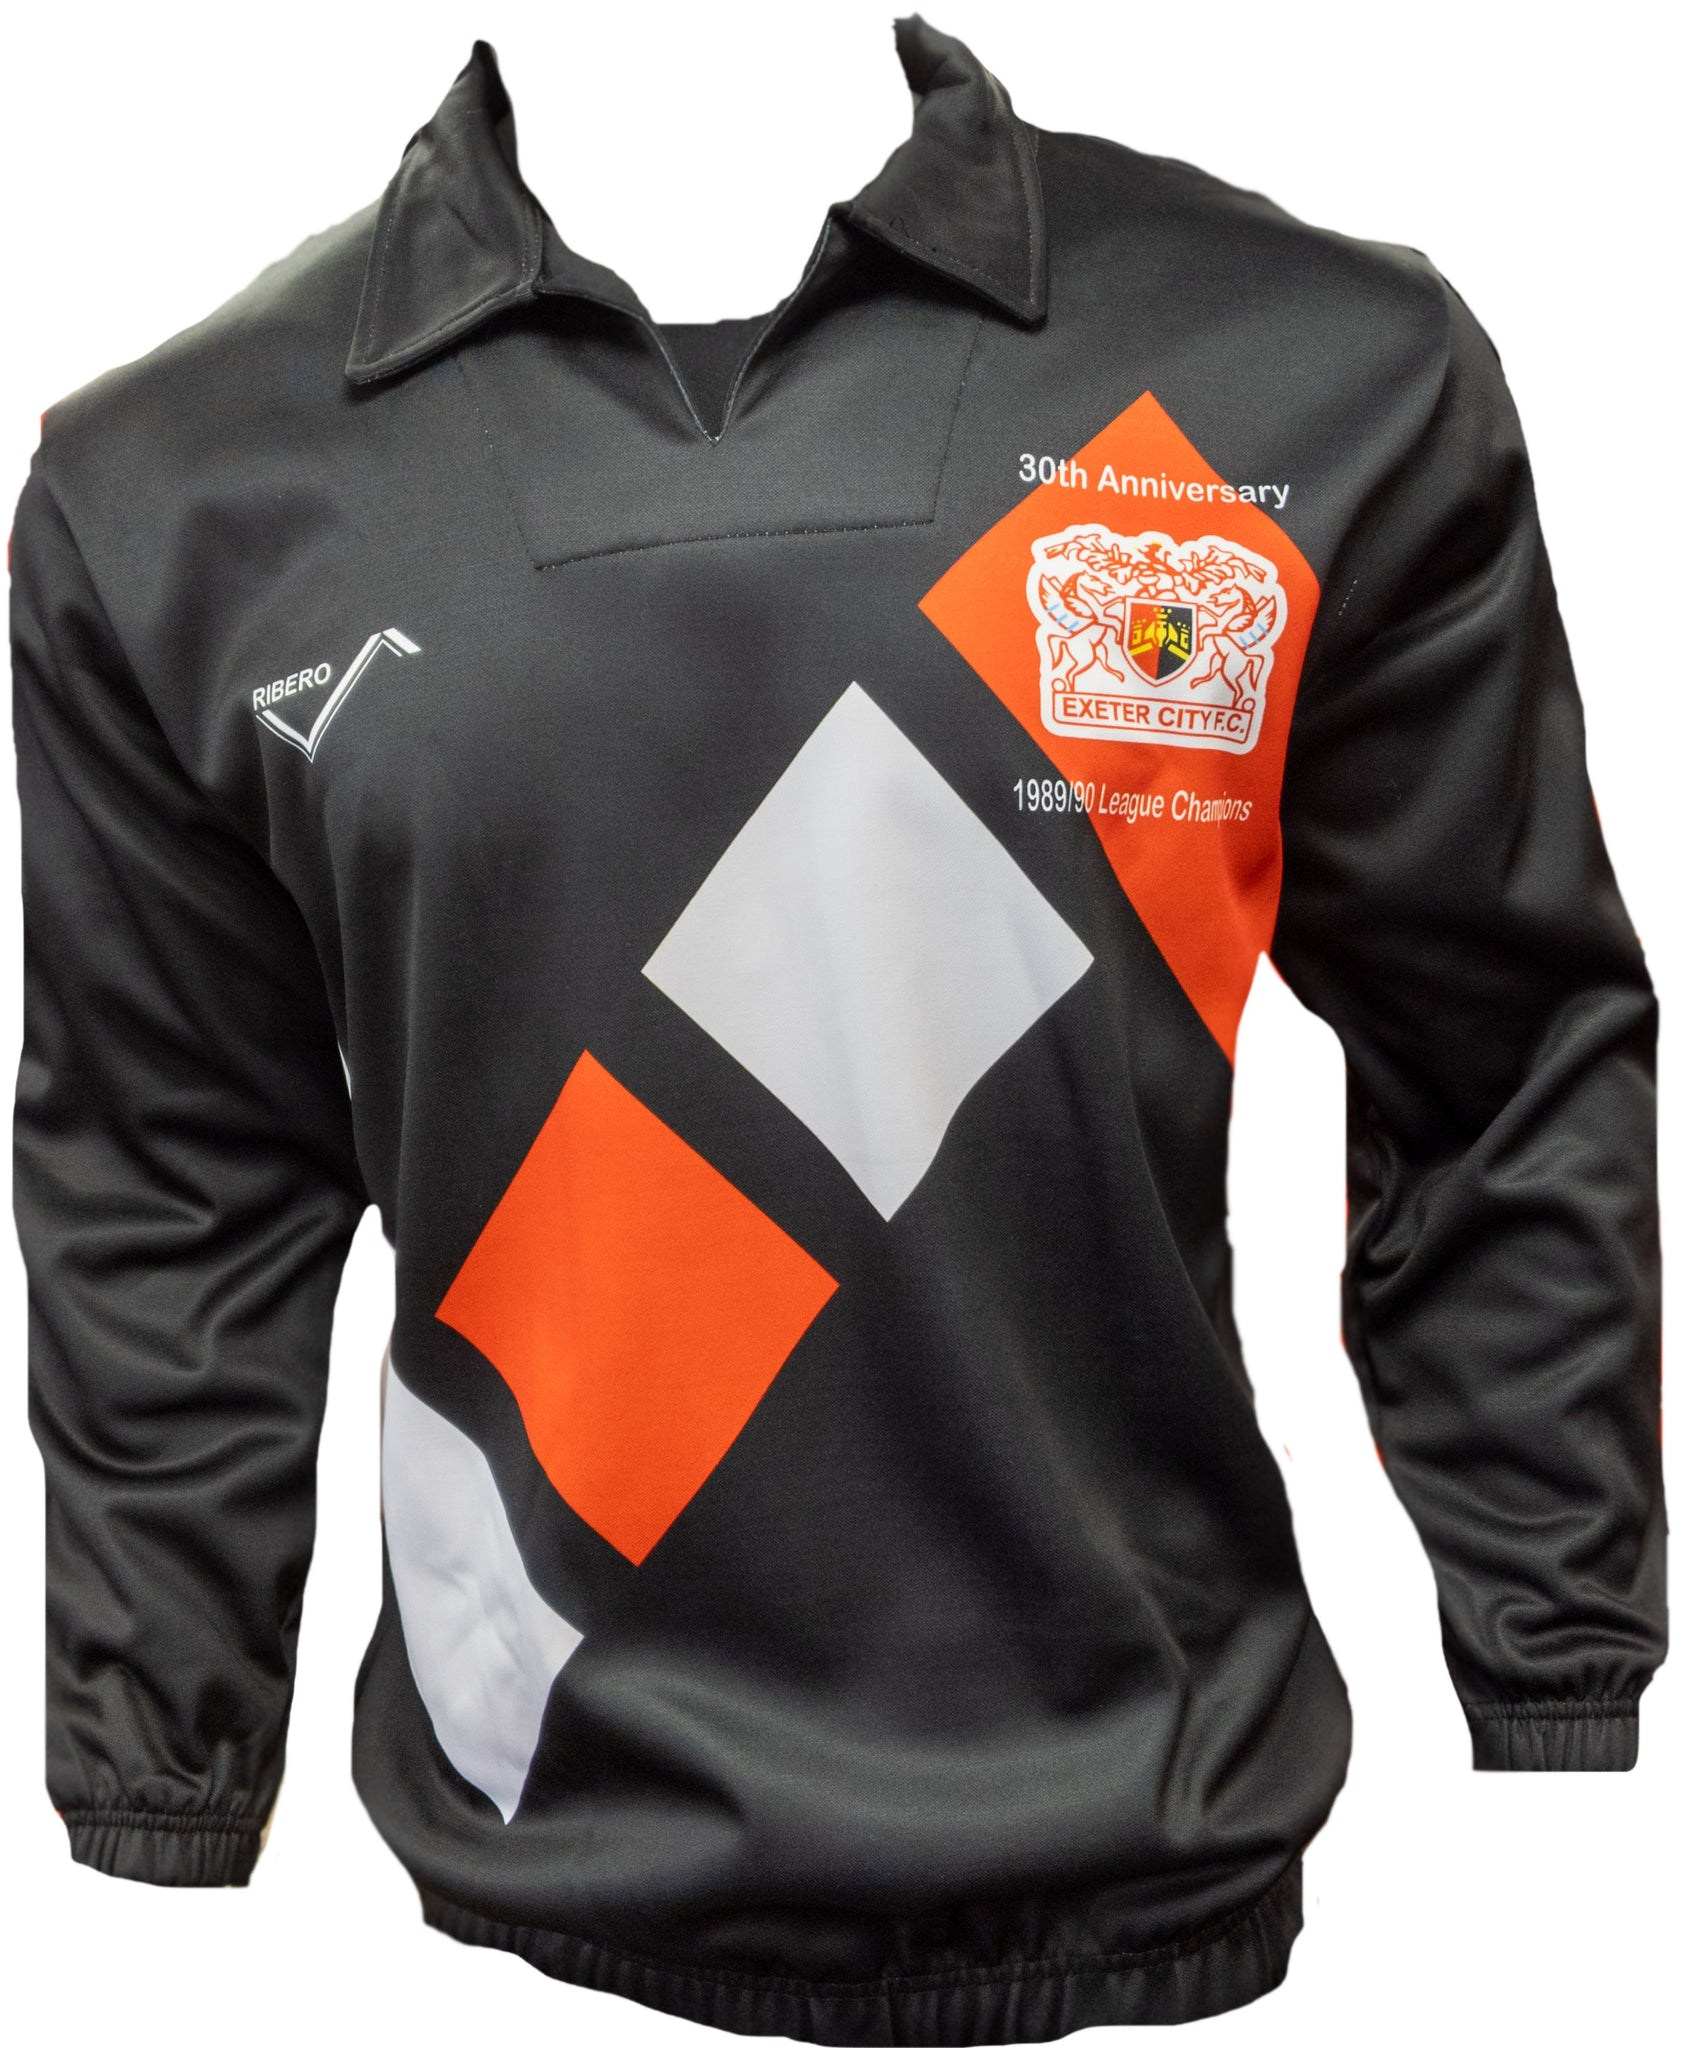 Retro 1990/92 RIBERO Warm-Up Top